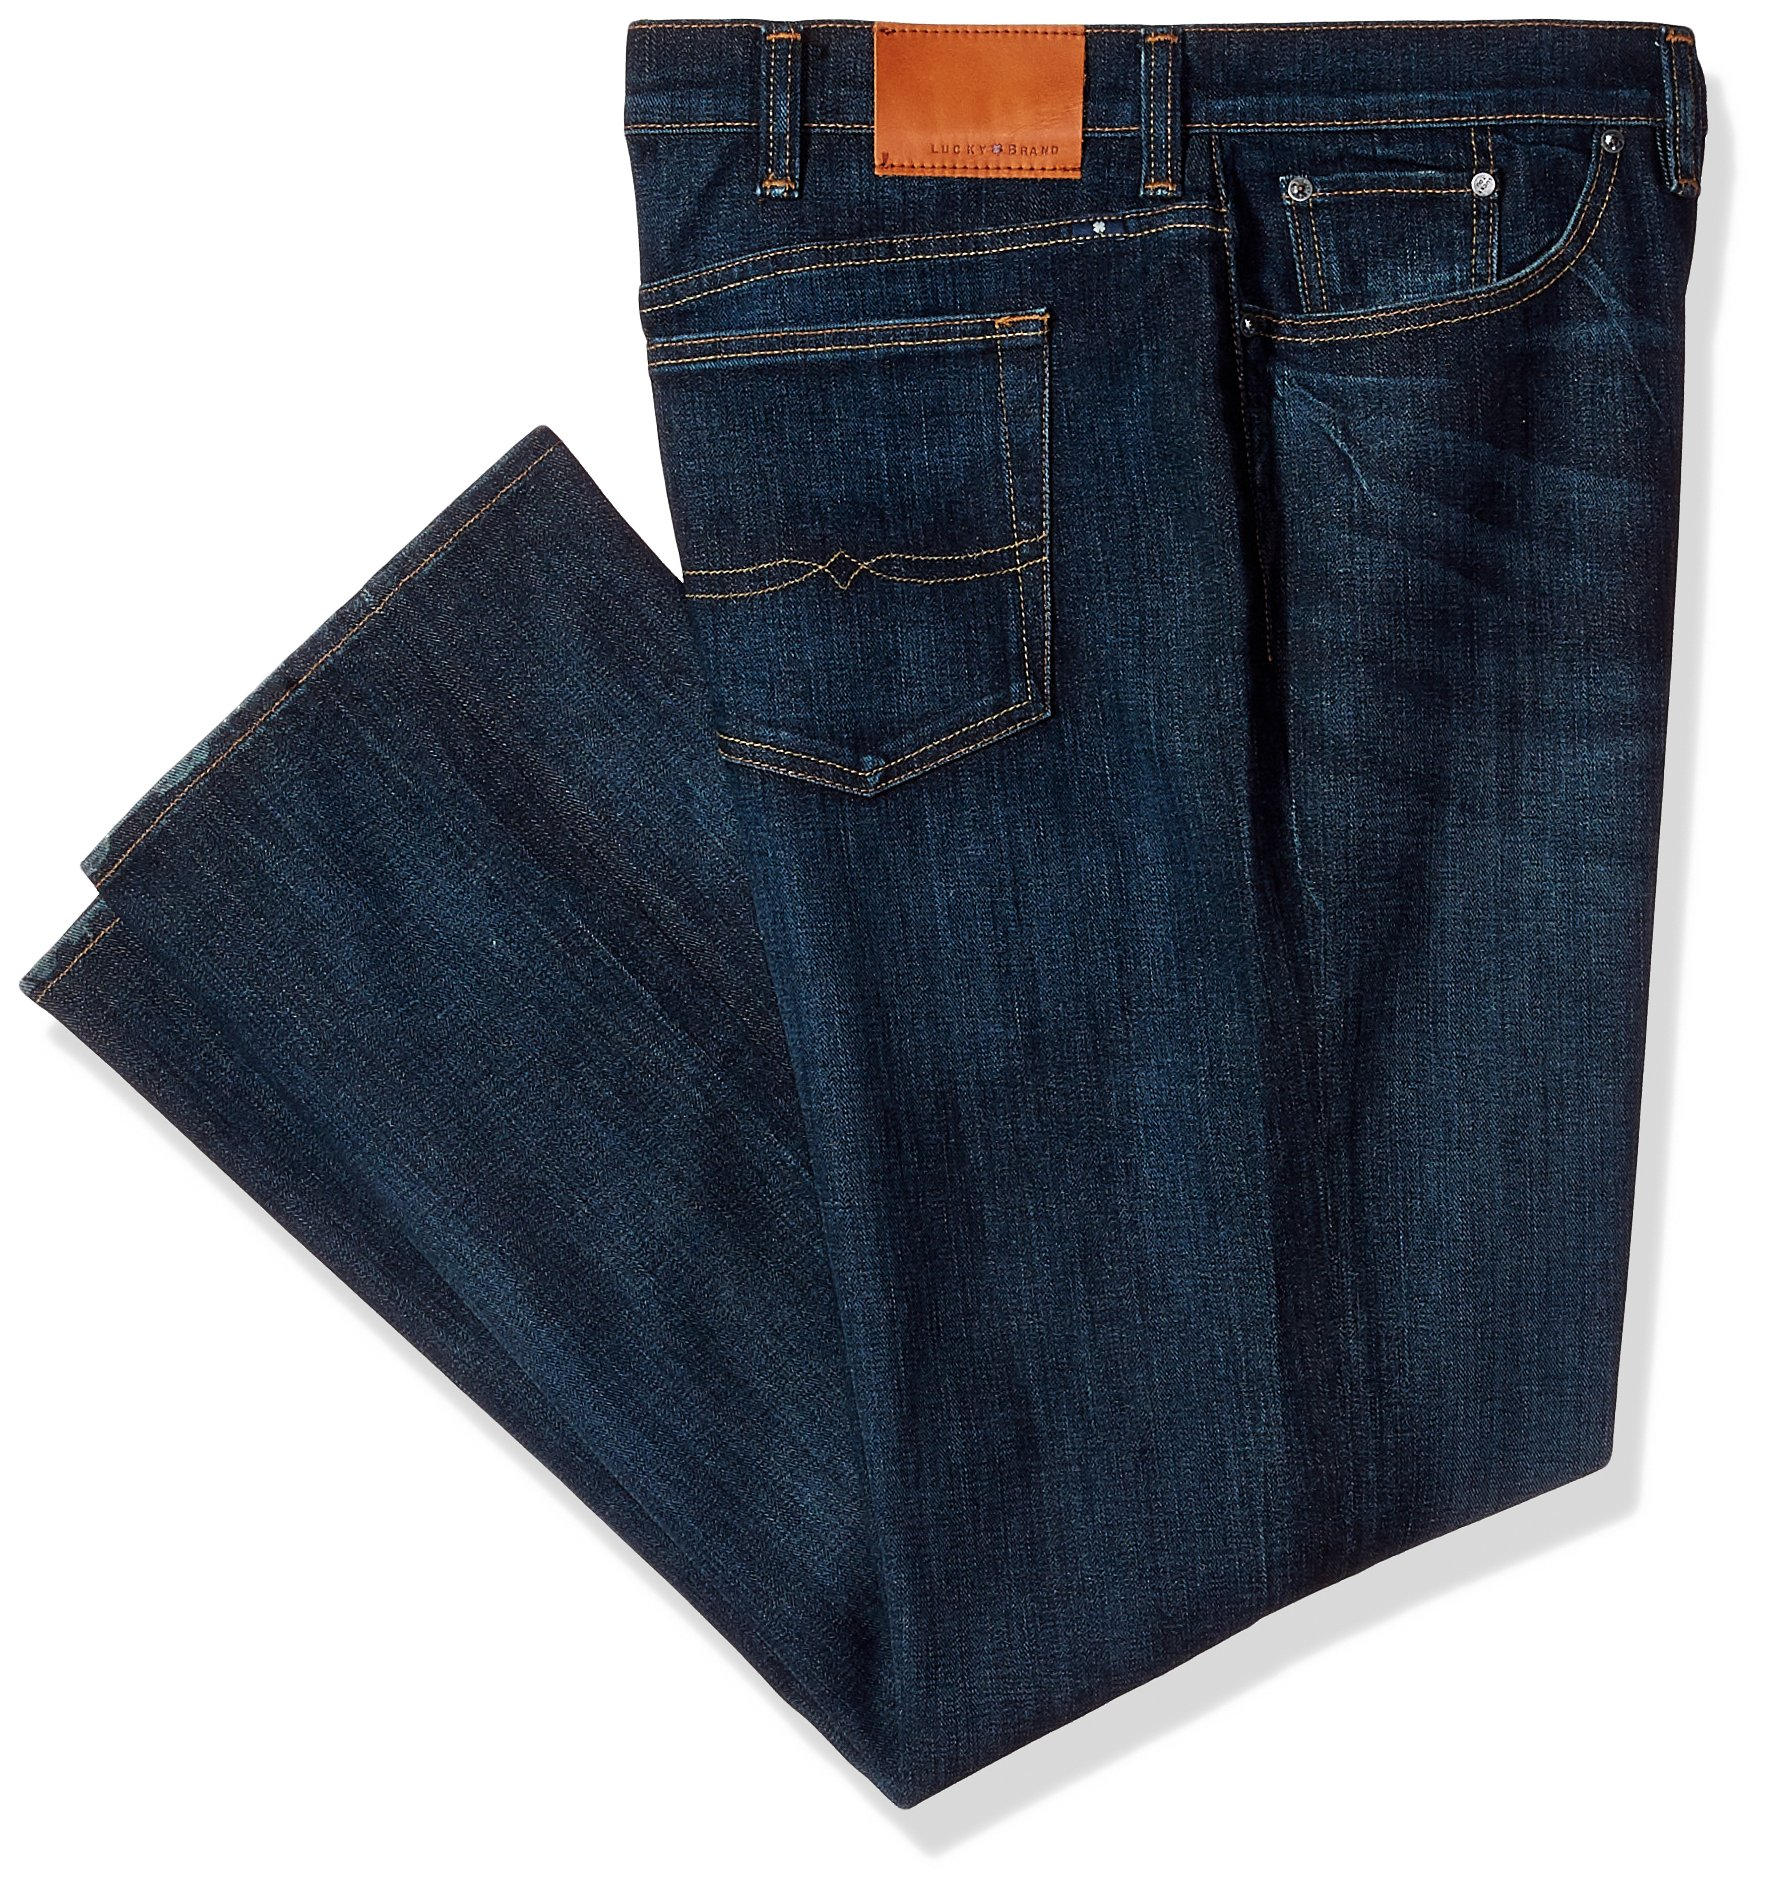 Lucky Brand Men's Tall Big & Tall 181 Relaxed Straight Jean in Aliso Viejo, 44X30